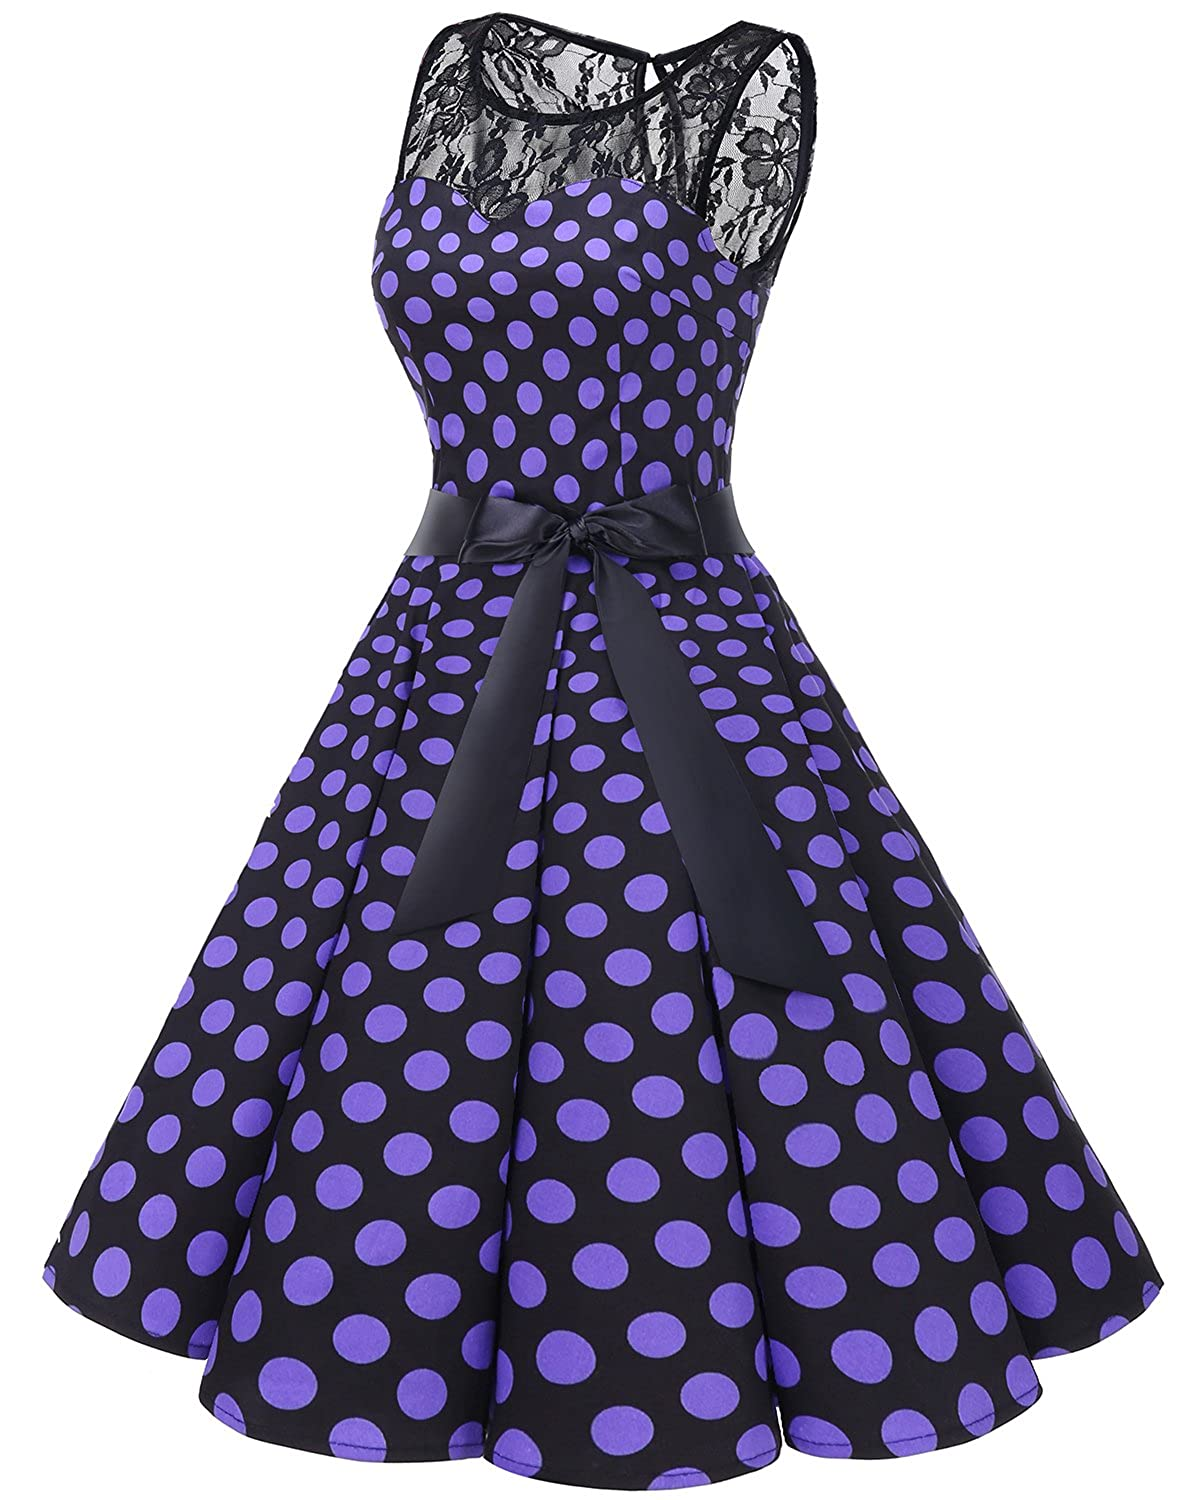 Bbonlinedress Women s 1950s Vintage Rockabilly Swing Dress Lace Cocktail  Prom Party Dress at Amazon Women s Clothing store  4f0ac854a2cd